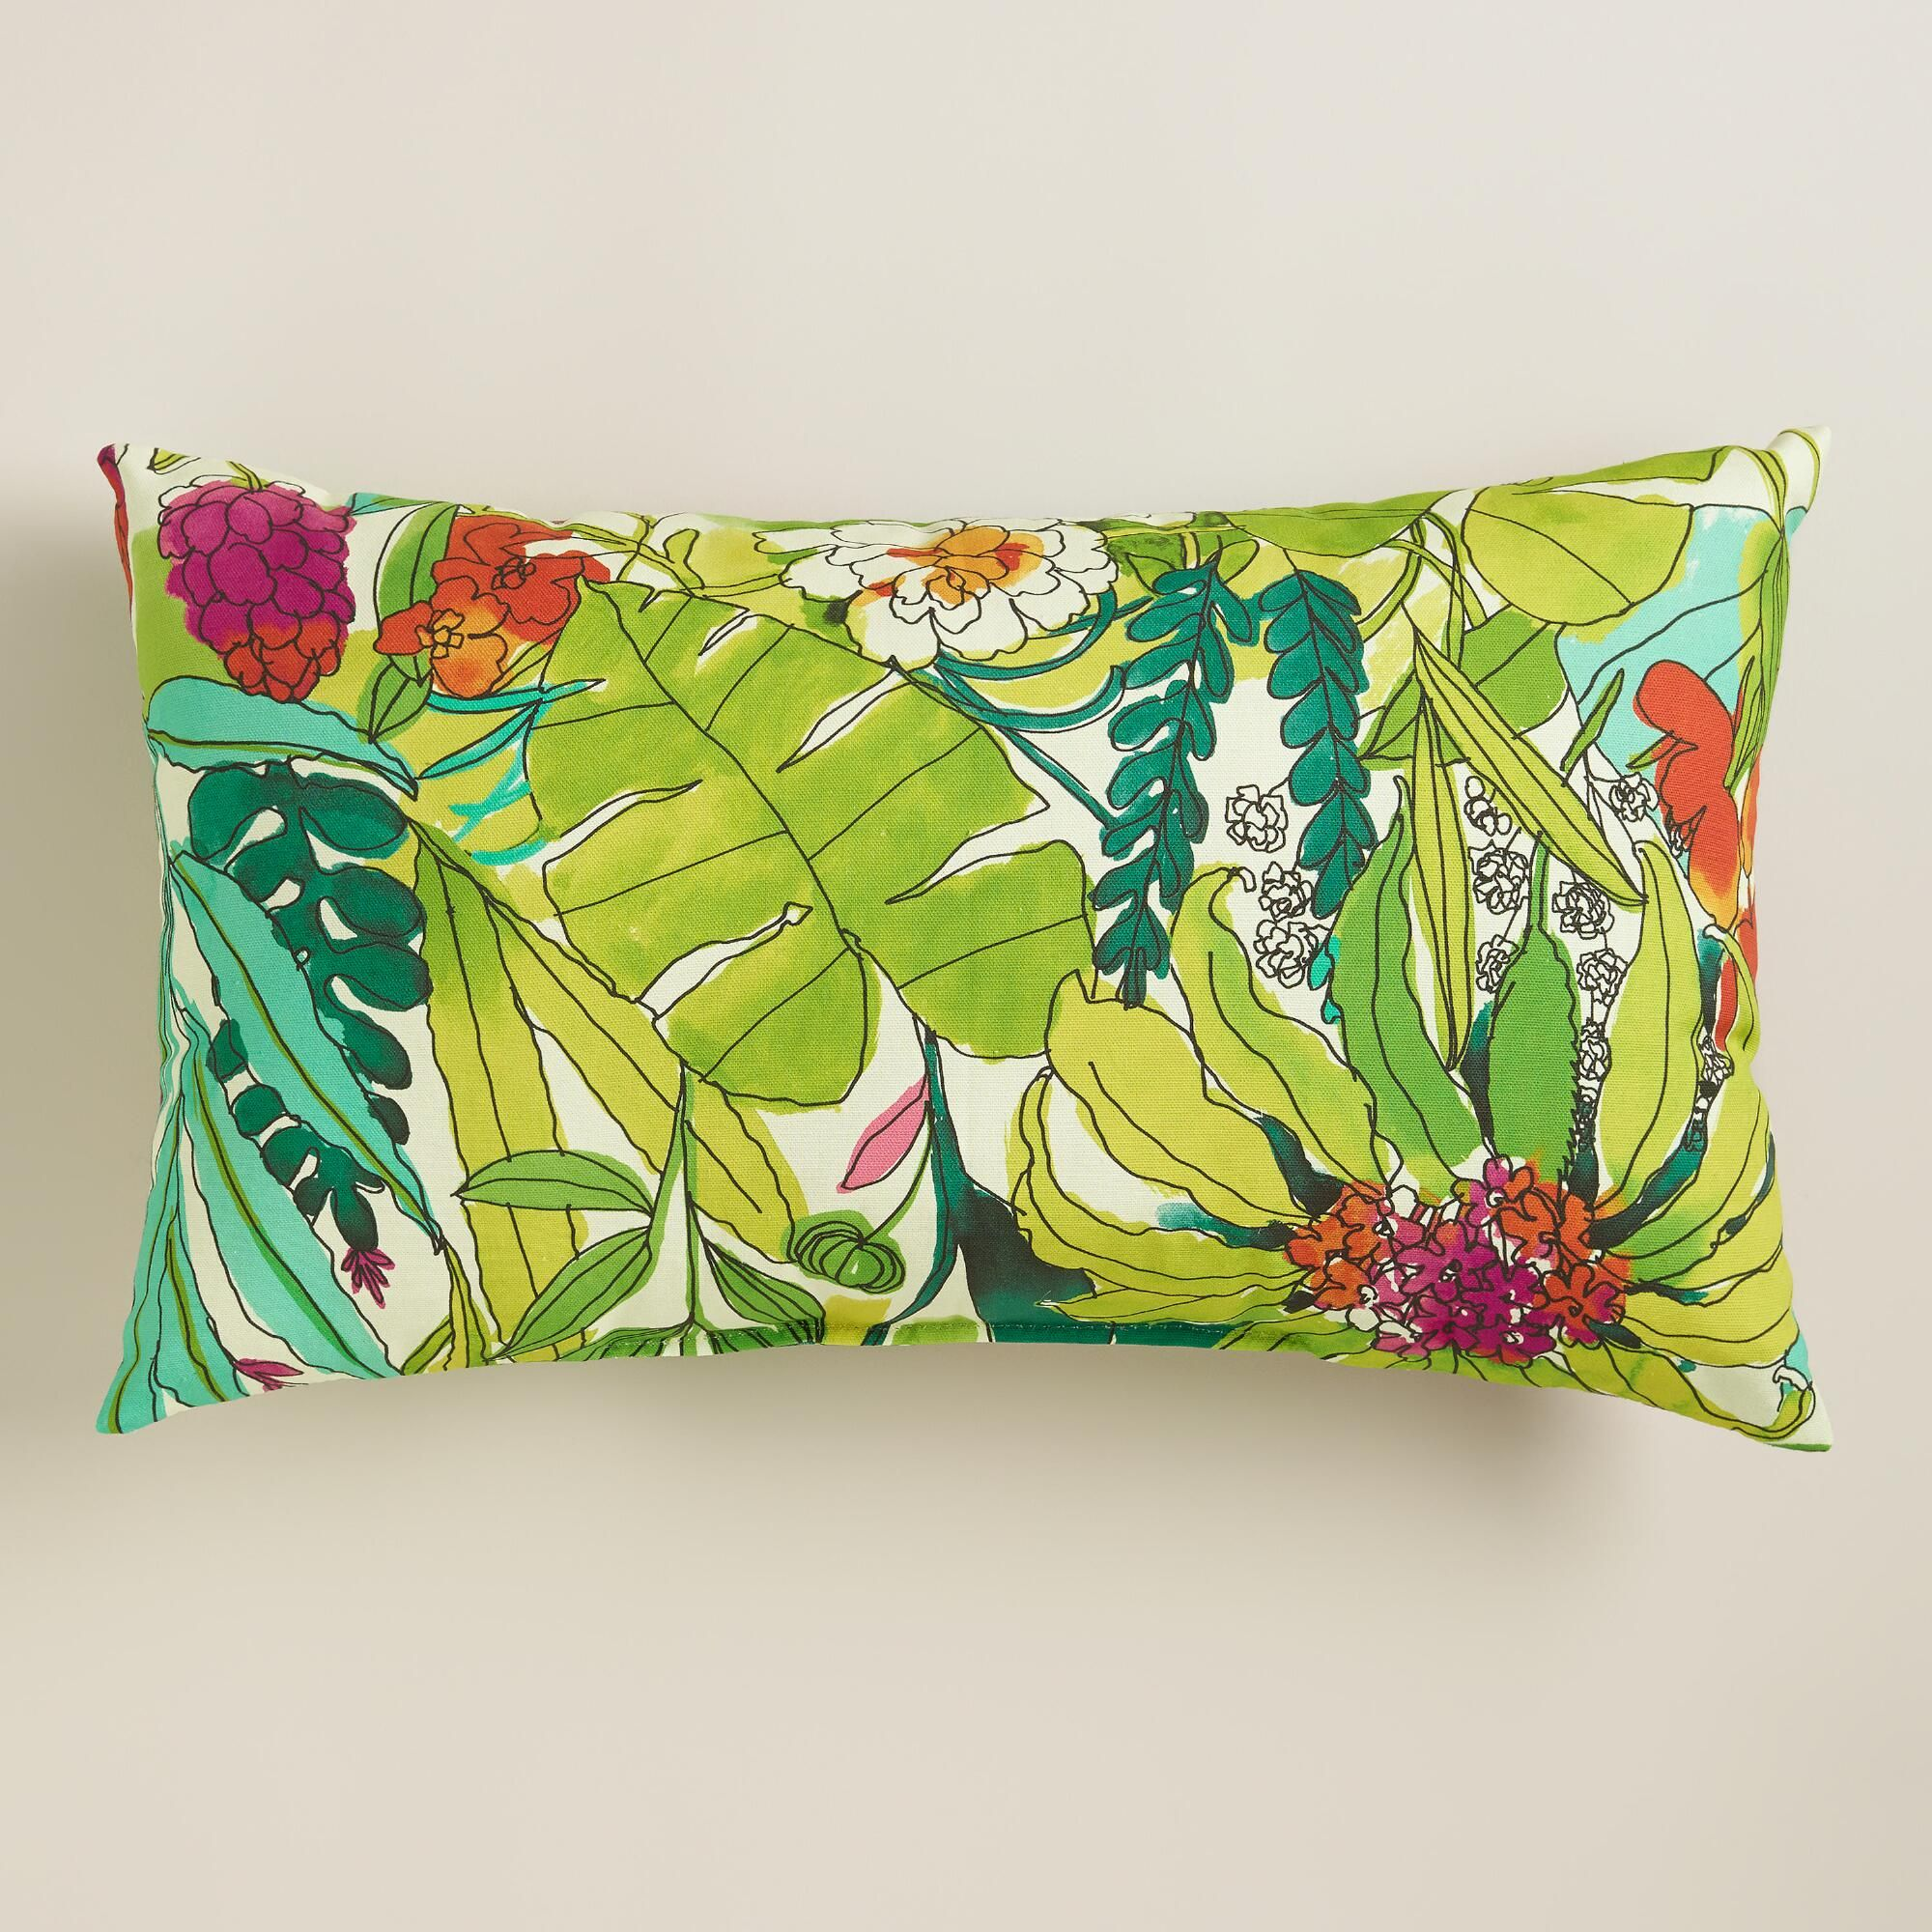 ideas decorating yellow relaxing within outdoor patio cdbossington lumbar pillows accessories pillow perfect for